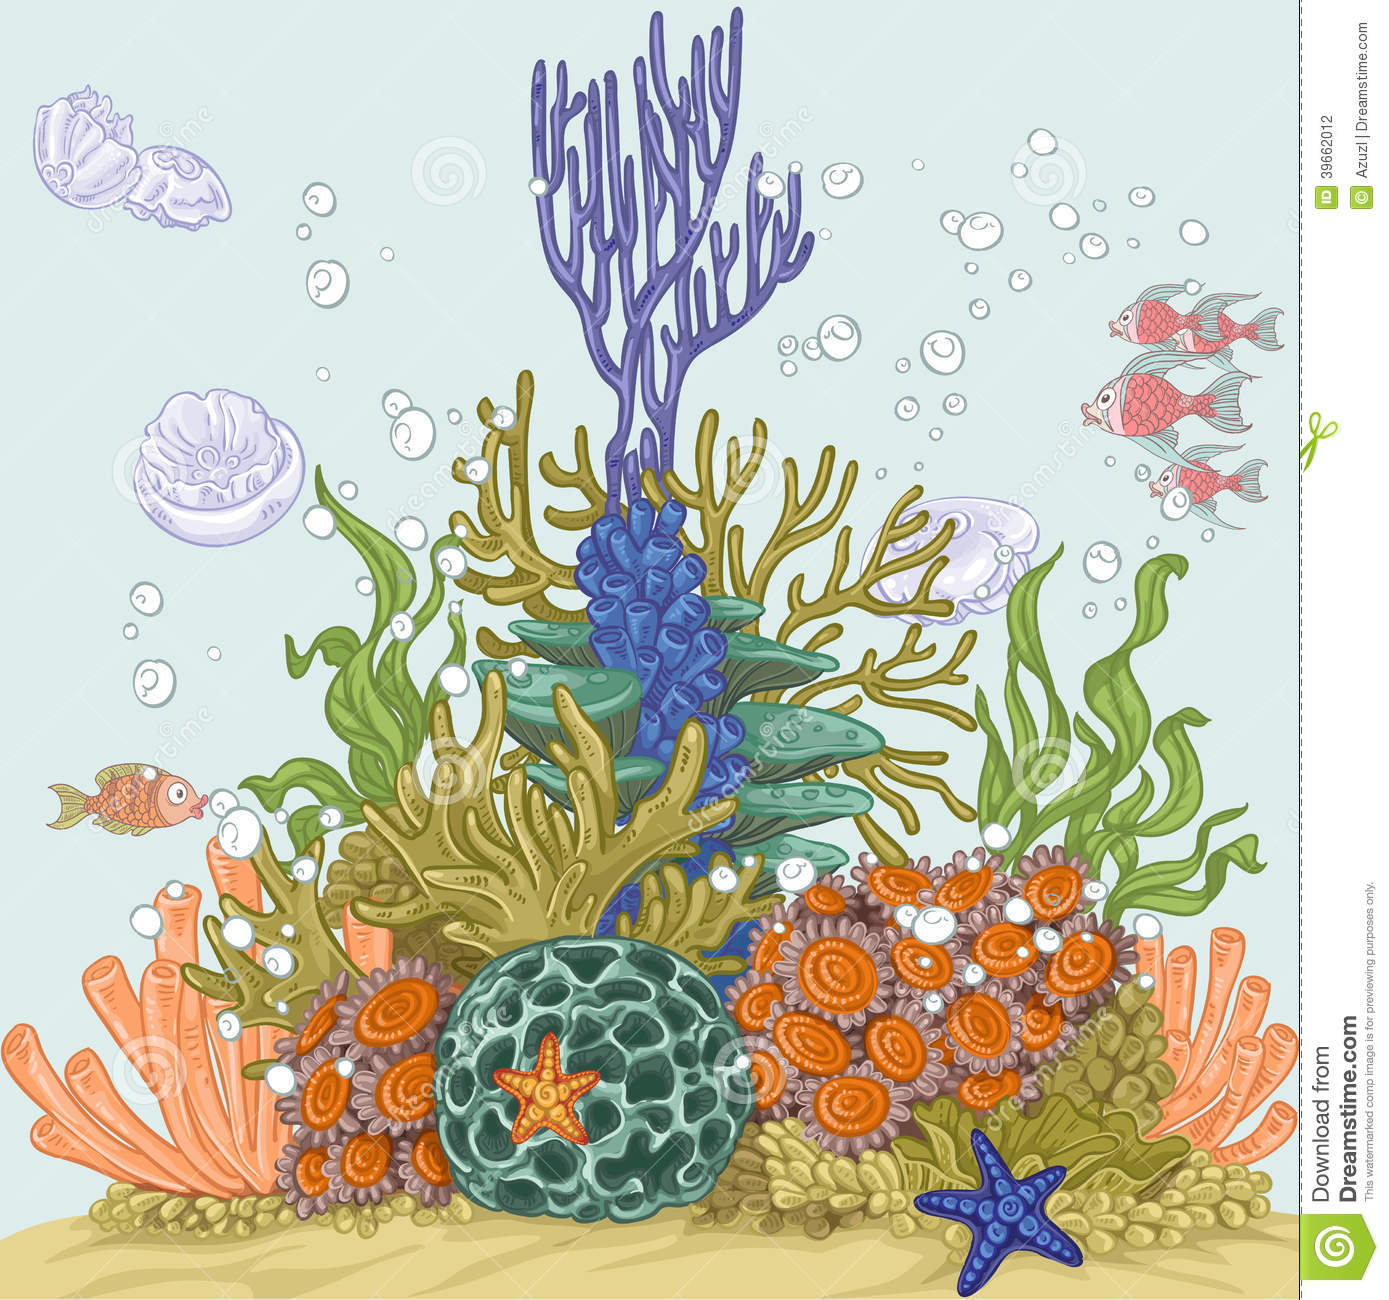 Coral Reef Illustration Stock Vector. Illustration Of